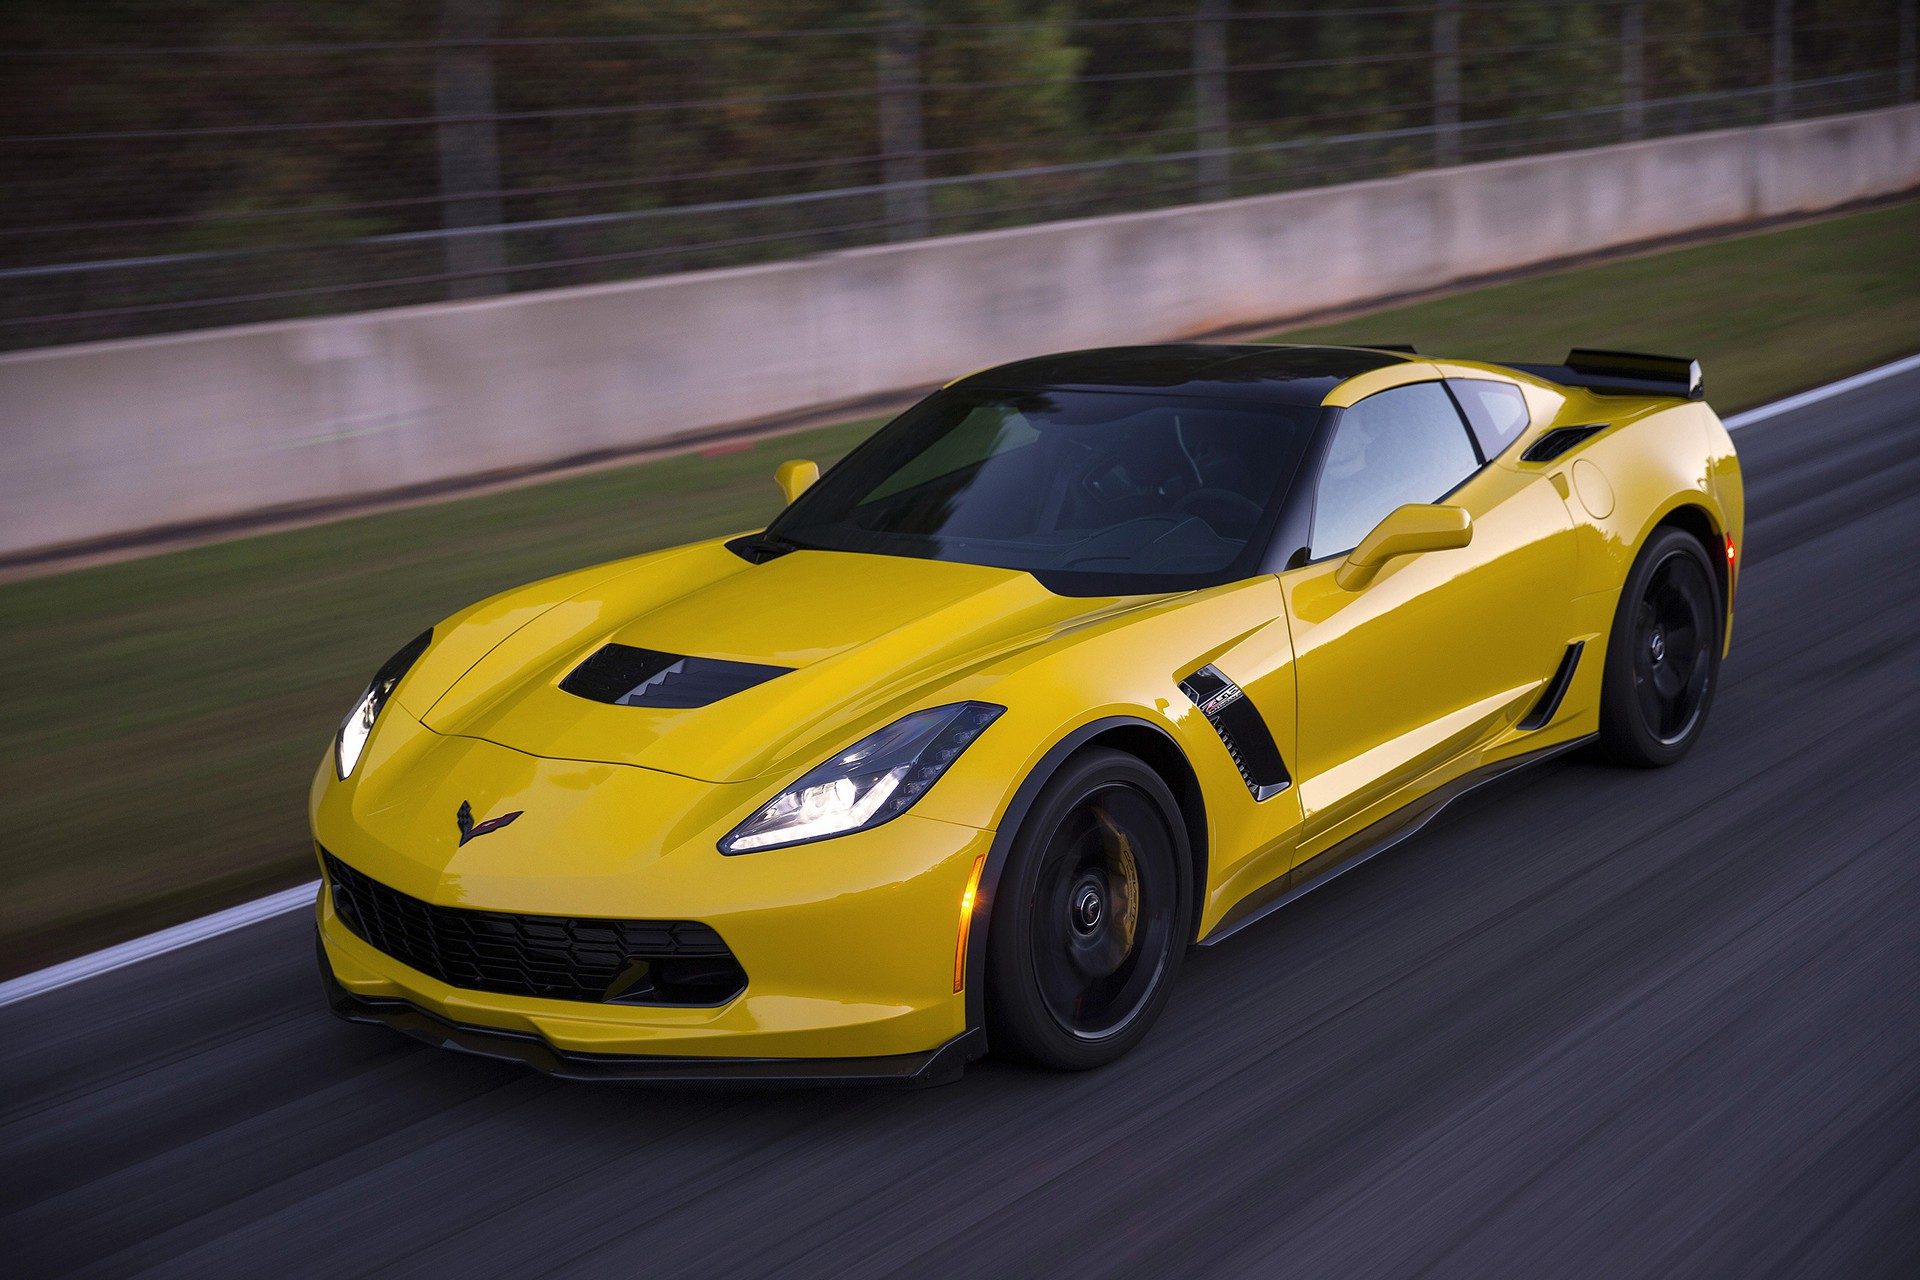 Corvette Zo7 >> 2016 Chevrolet Corvette Z06 Review - Carrrs Auto Portal